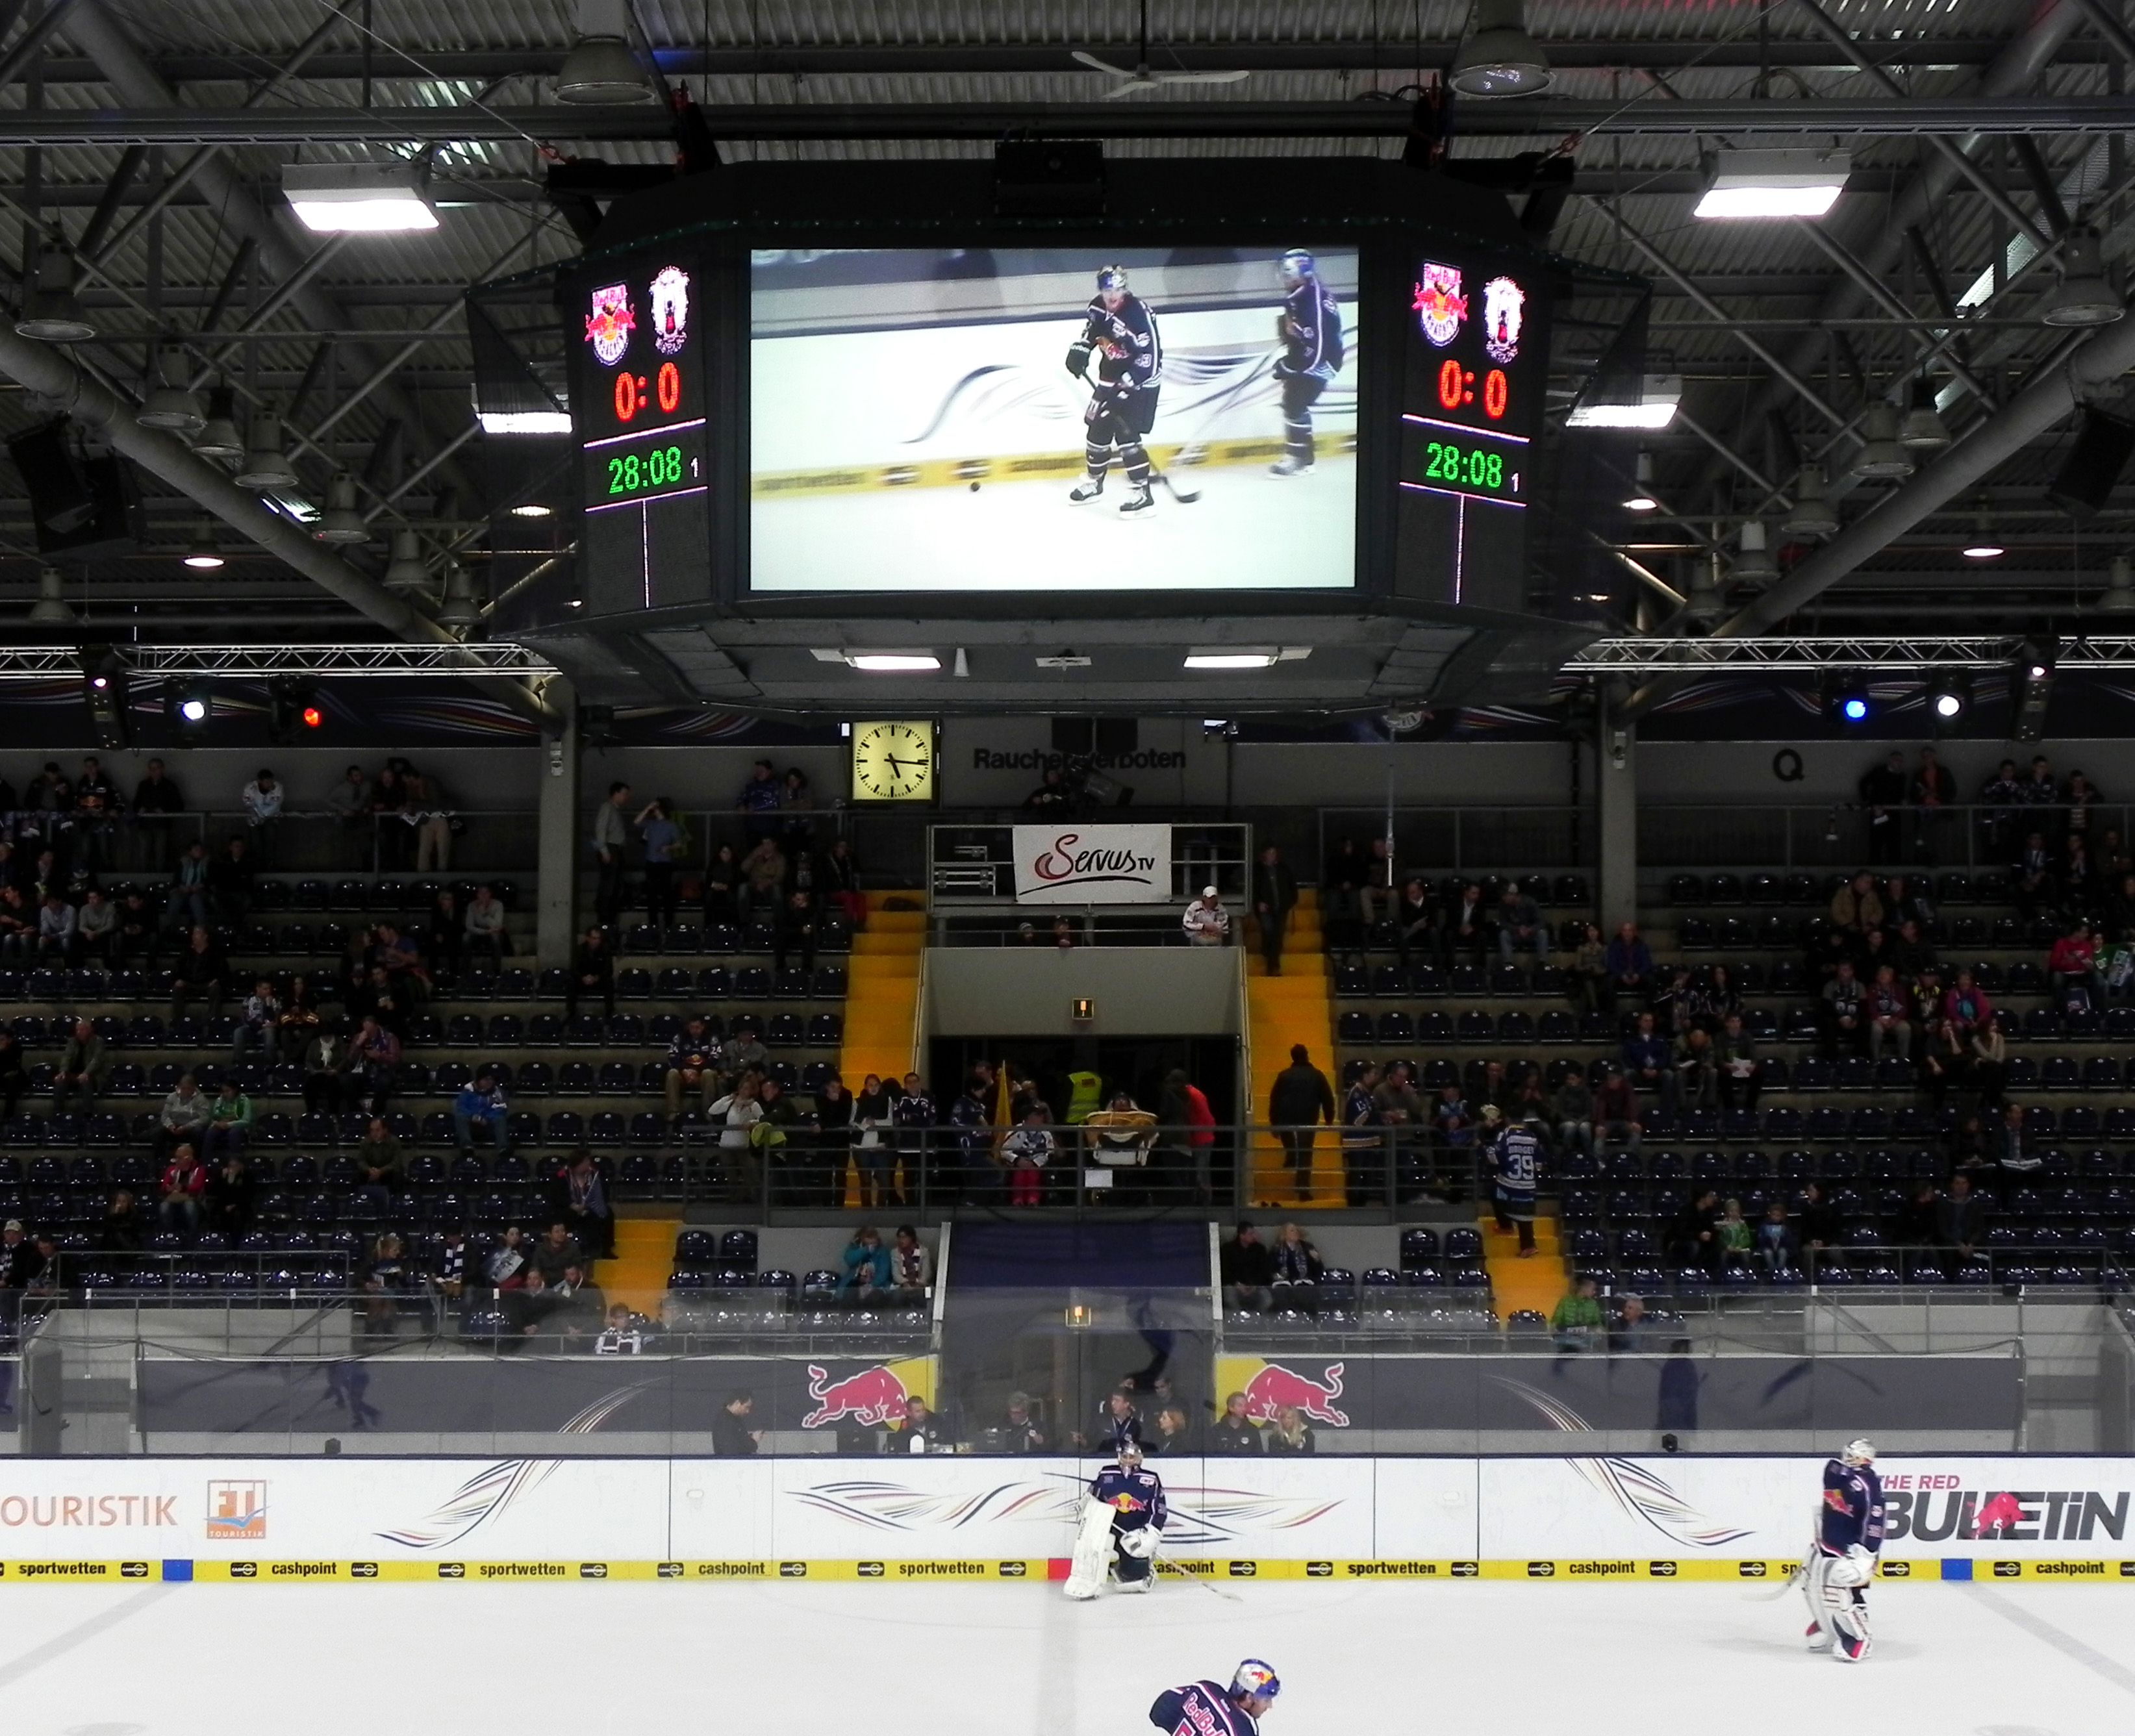 Led Boards For Ehc Red Bull Munich